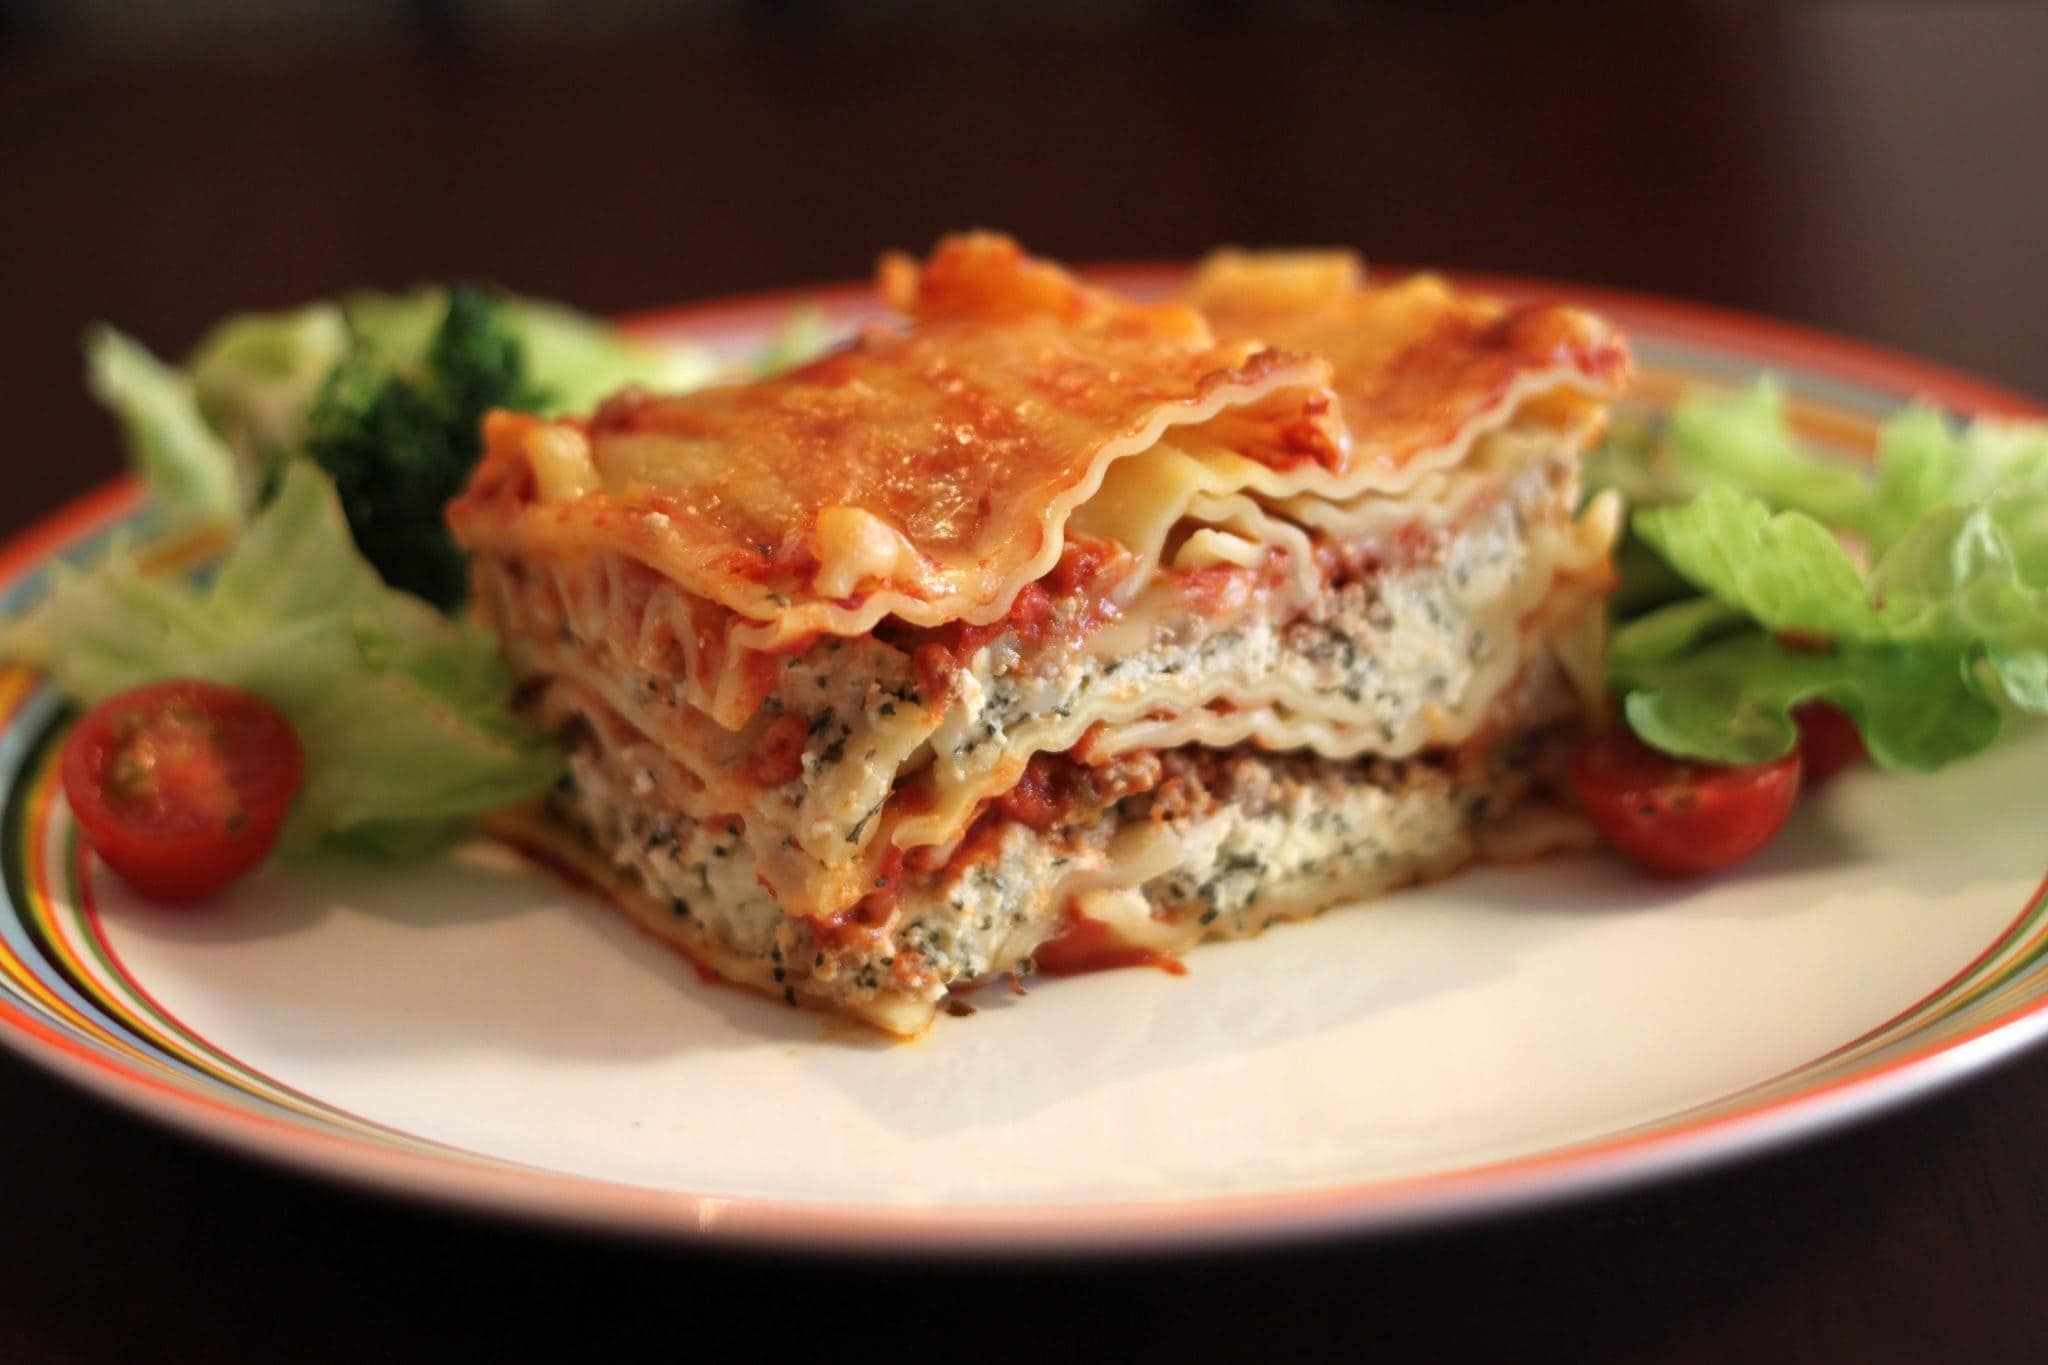 Lasagna is among the Italian Main Dishes.